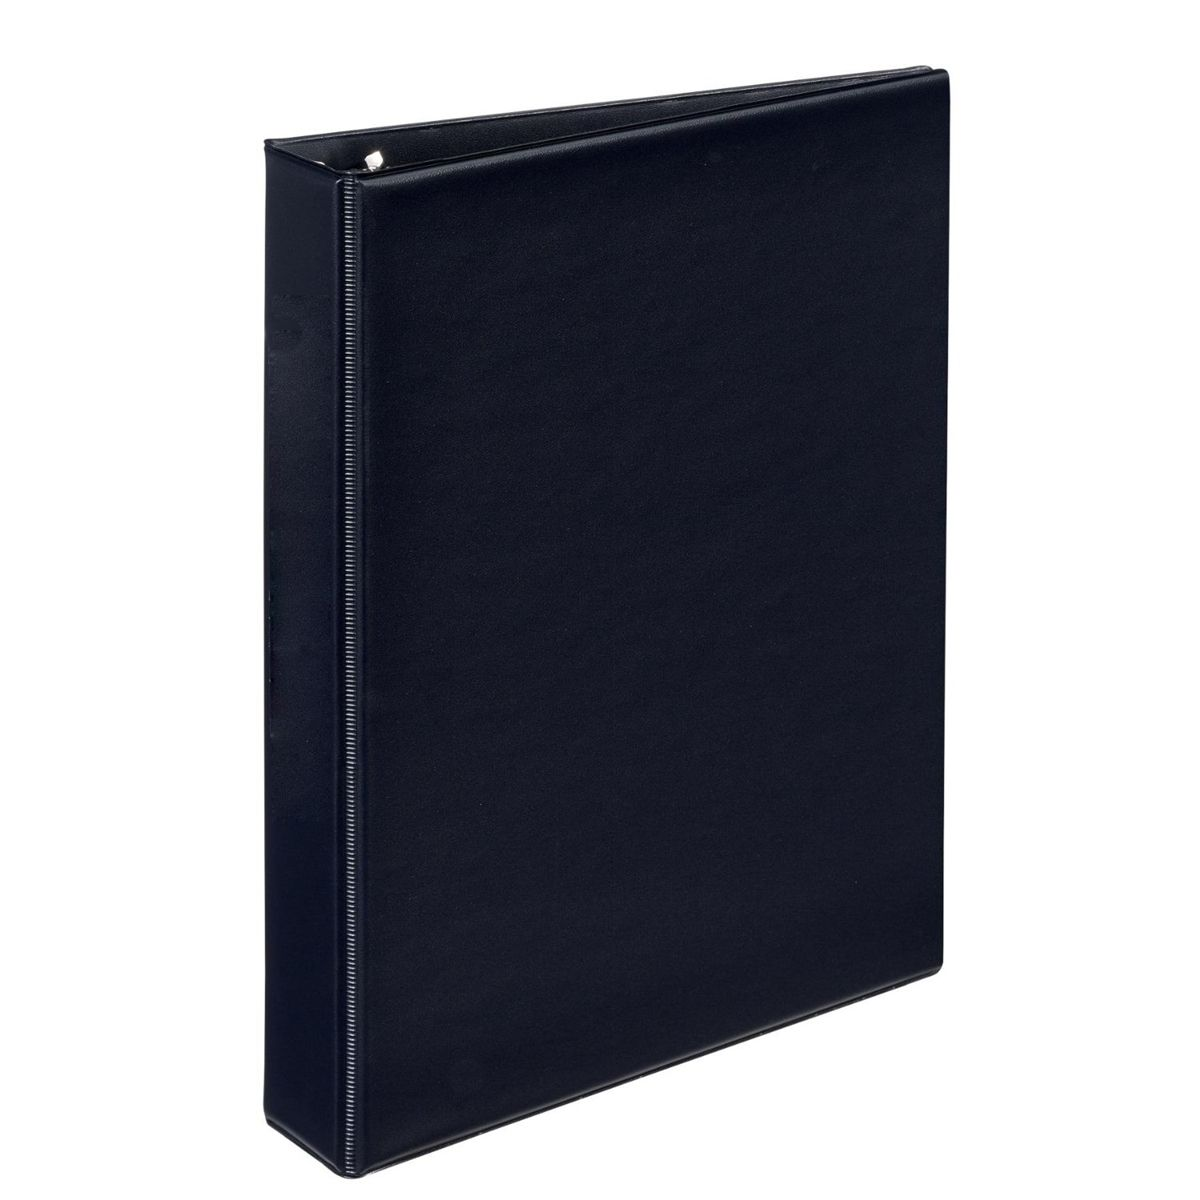 #7) The Iconic Blackbook That Speakers Are Required To